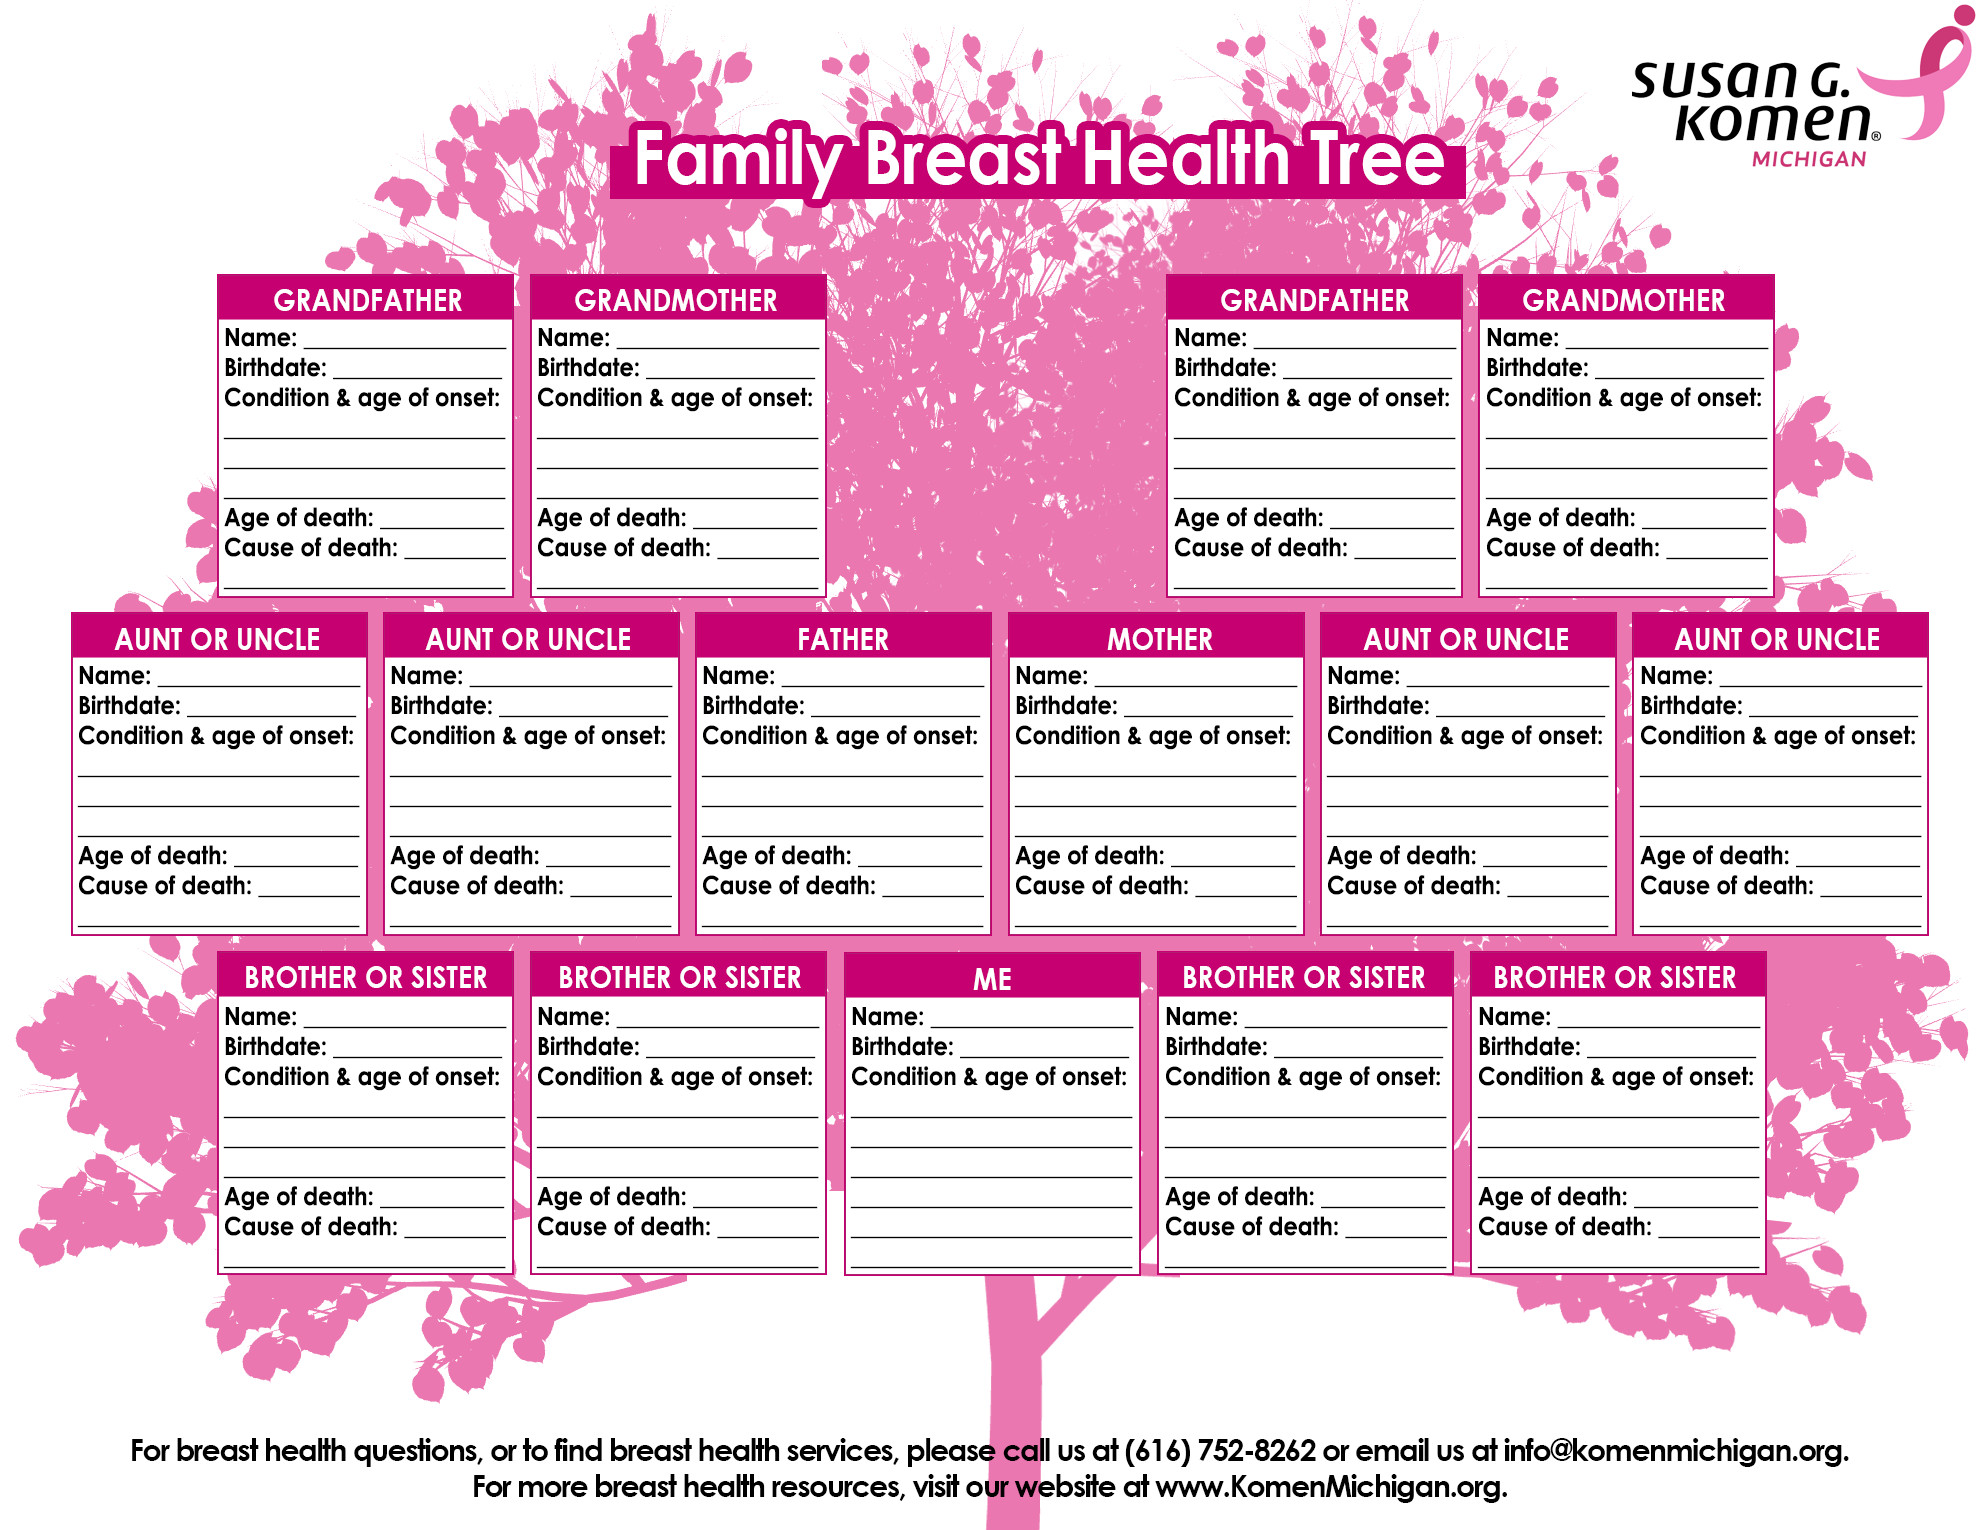 Family Medical Tree Knowing Family History Helps You Manage Your Health